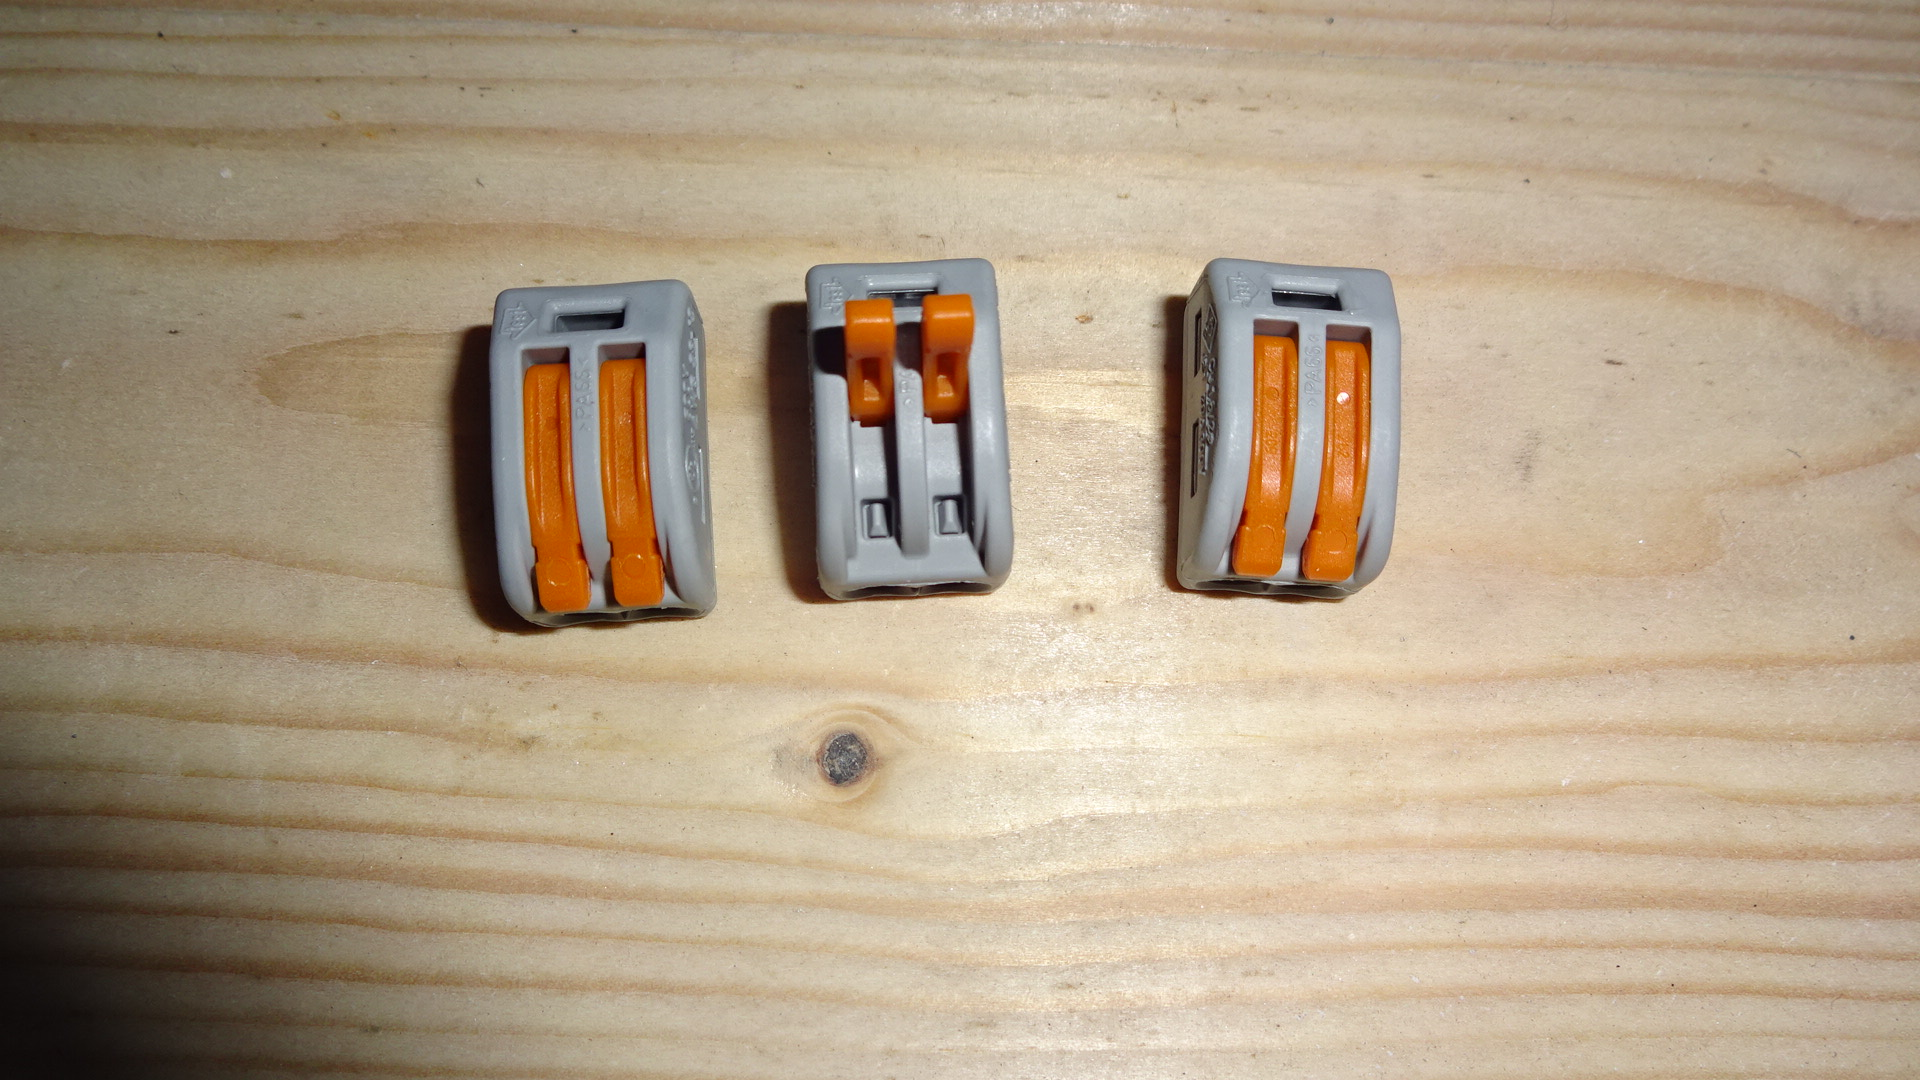 p) Here are the cheeky chaps - the orange lever flips up and allows the wire to enter into the chamber. Once the orange lever is flipped down, the cable is locked in place and contact can be made with the chamber next to it.